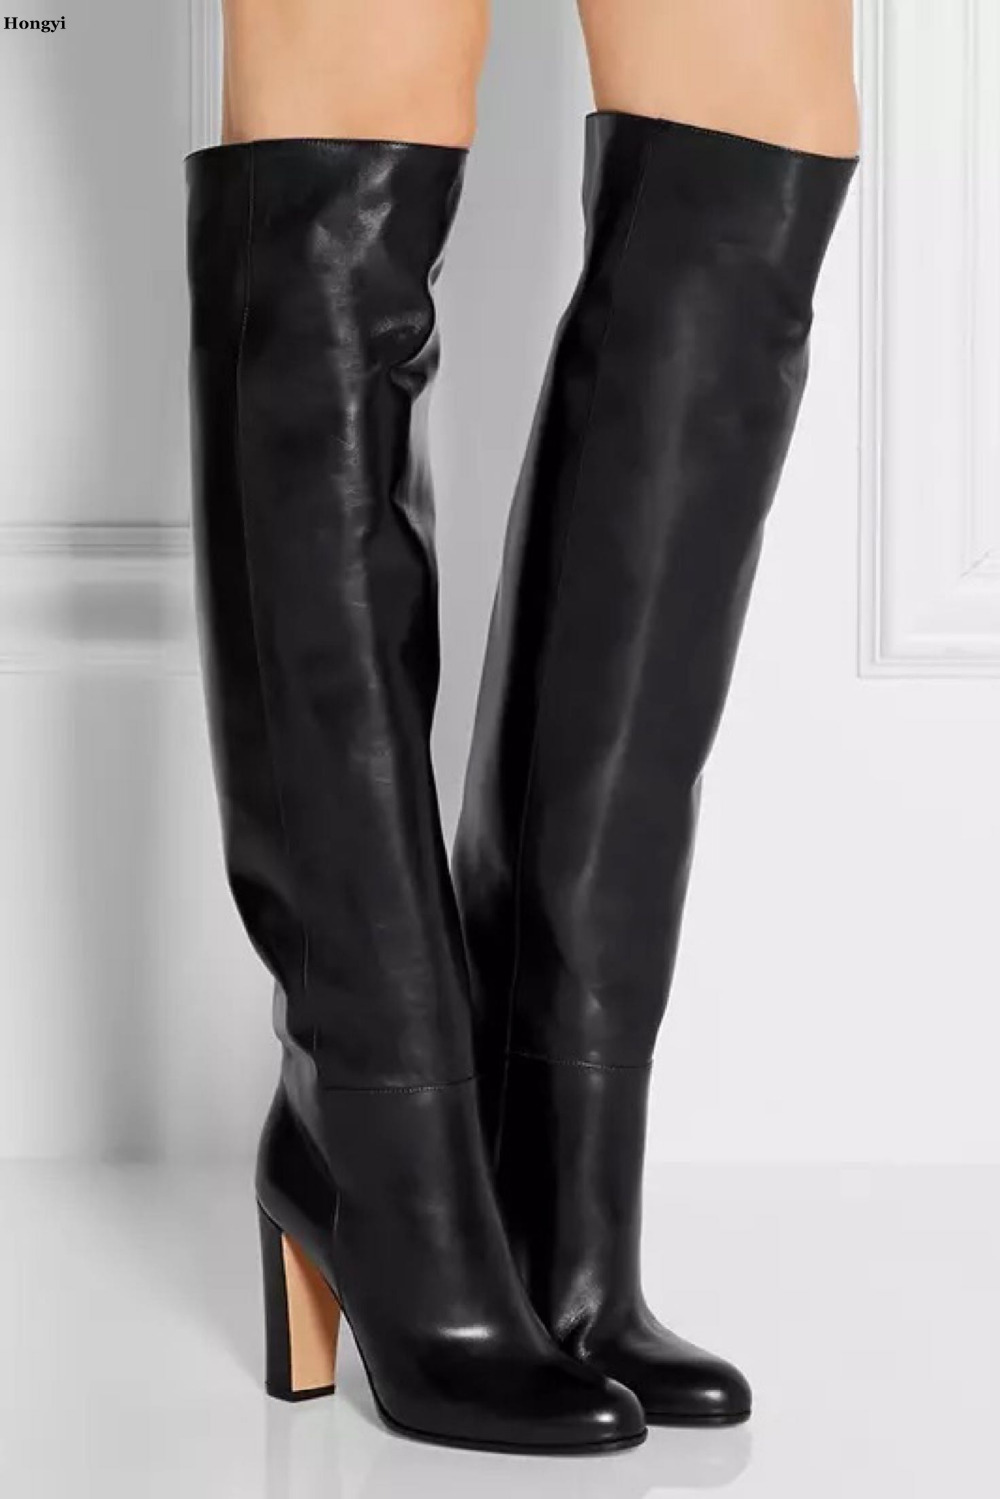 Hongyi Autumn Winter Newest Black Boots Woman round toe over the knee boots thick heels riding boots motorcycle leather boots 2017 winter fashion black patent leather woman boots round toe crystal ankle boots high quality thick heels riding boots